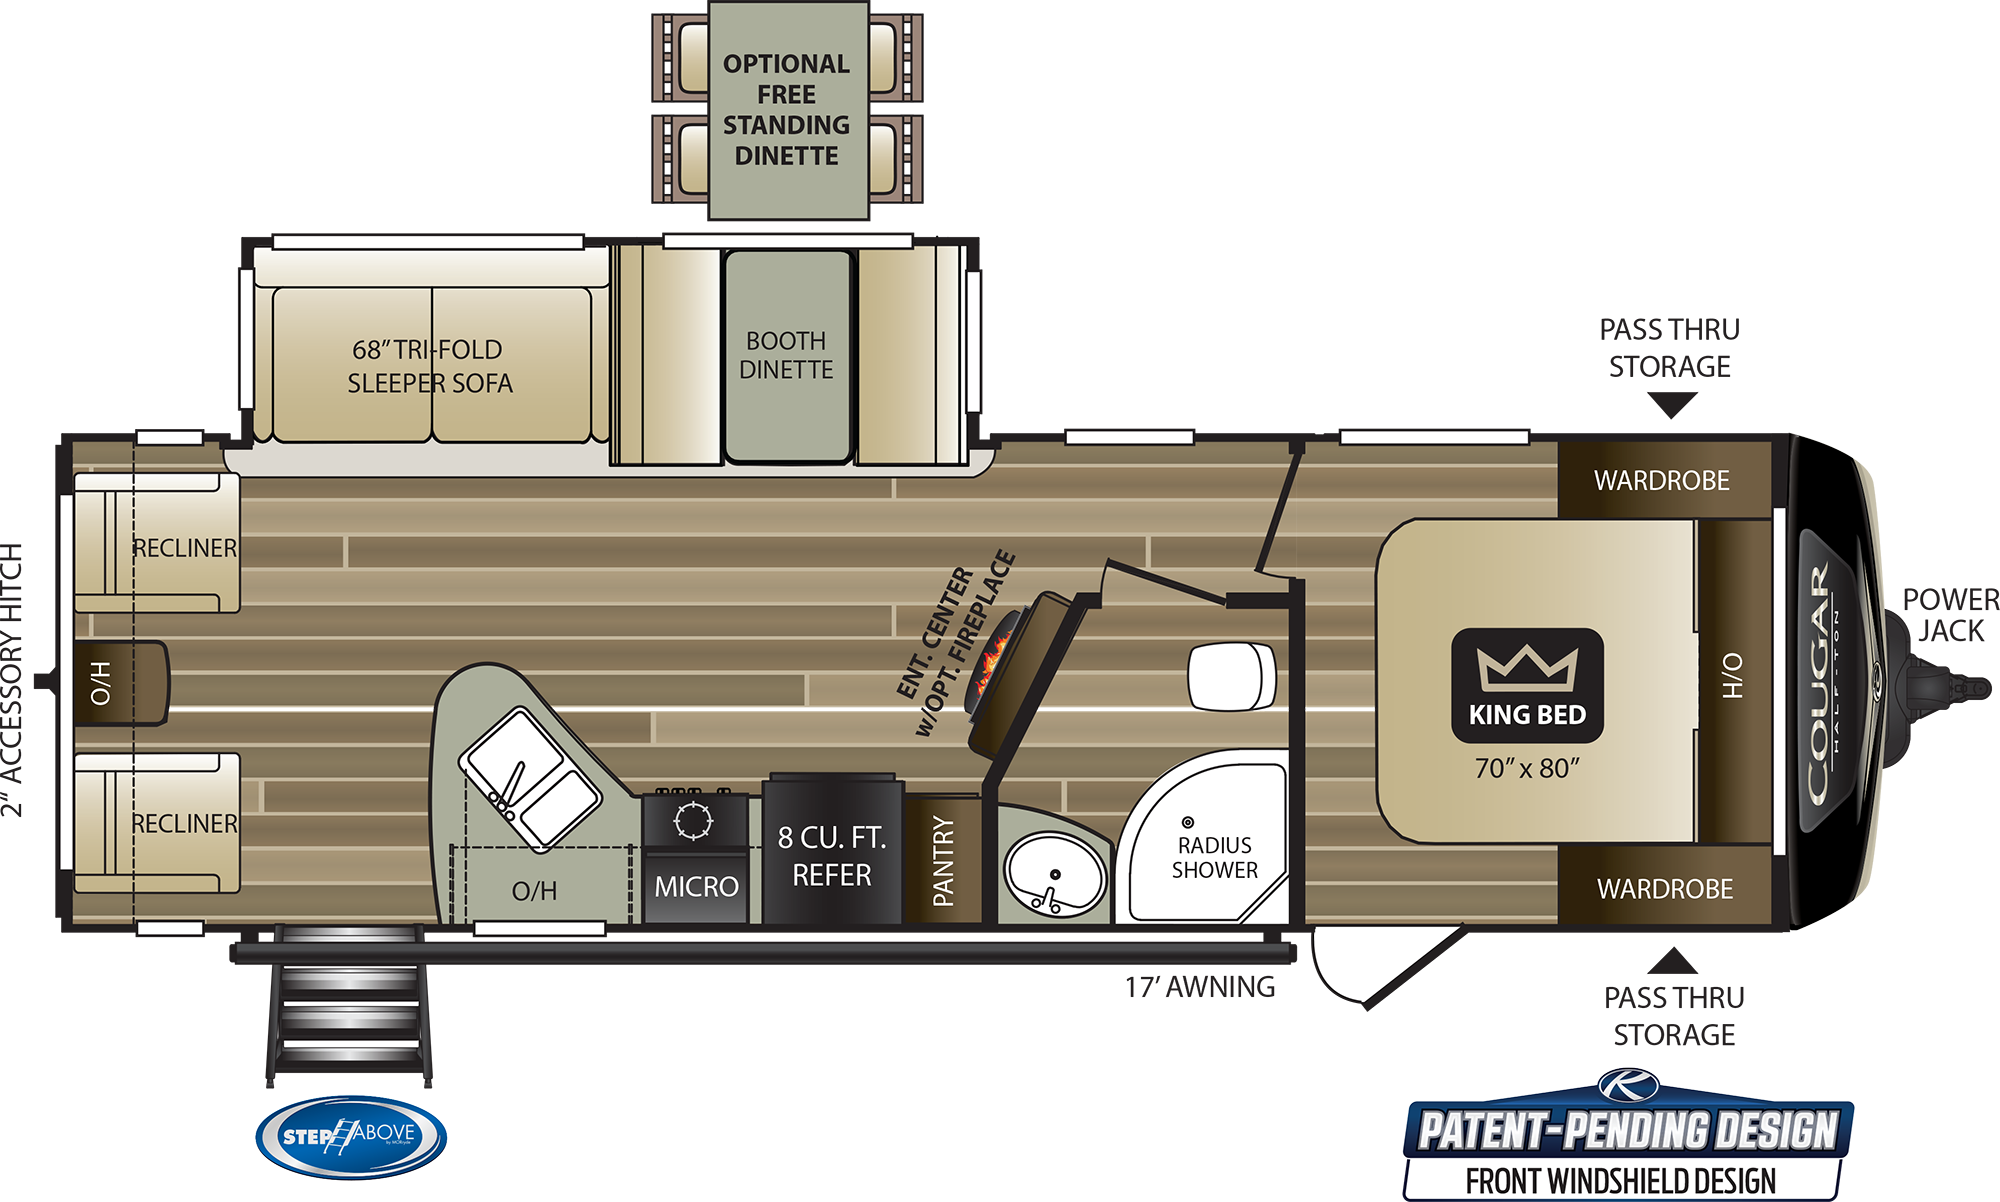 2020 KEYSTONE COUGAR HALF-TON 27SAB (couples) Floorplan